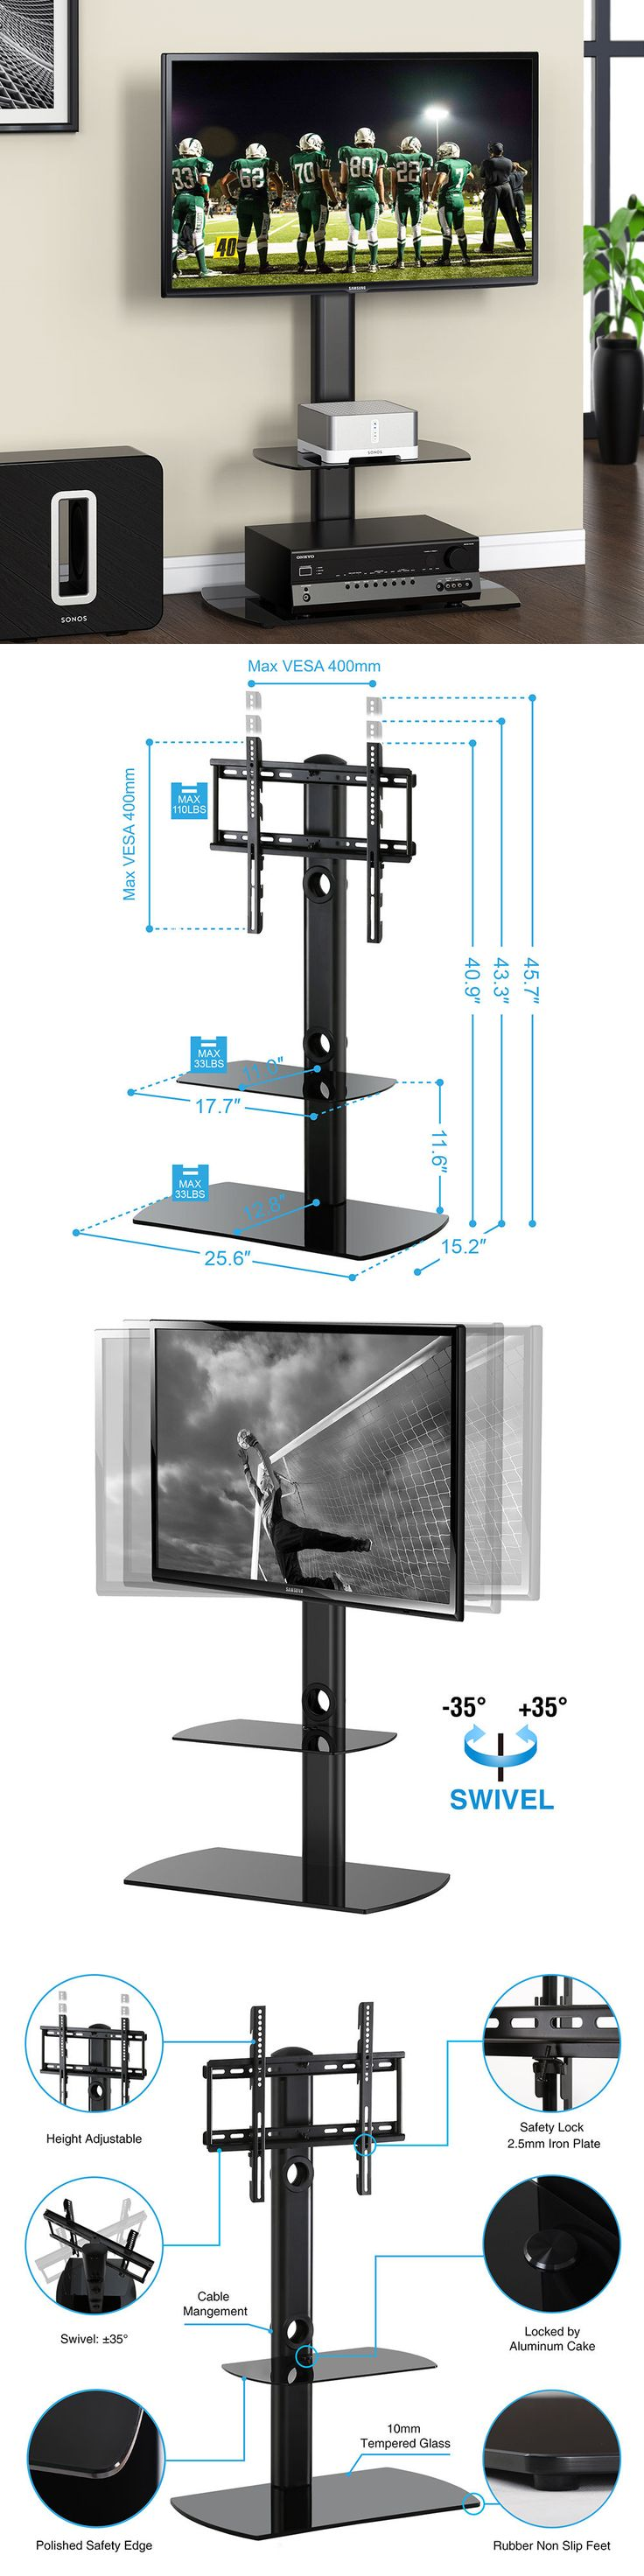 Home shop live tv stands chunky stretch tv stand - Entertainment Units Tv Stands Fitueyes Flat Screen Lcd Tv Stand Shelves With Swivel Mount For